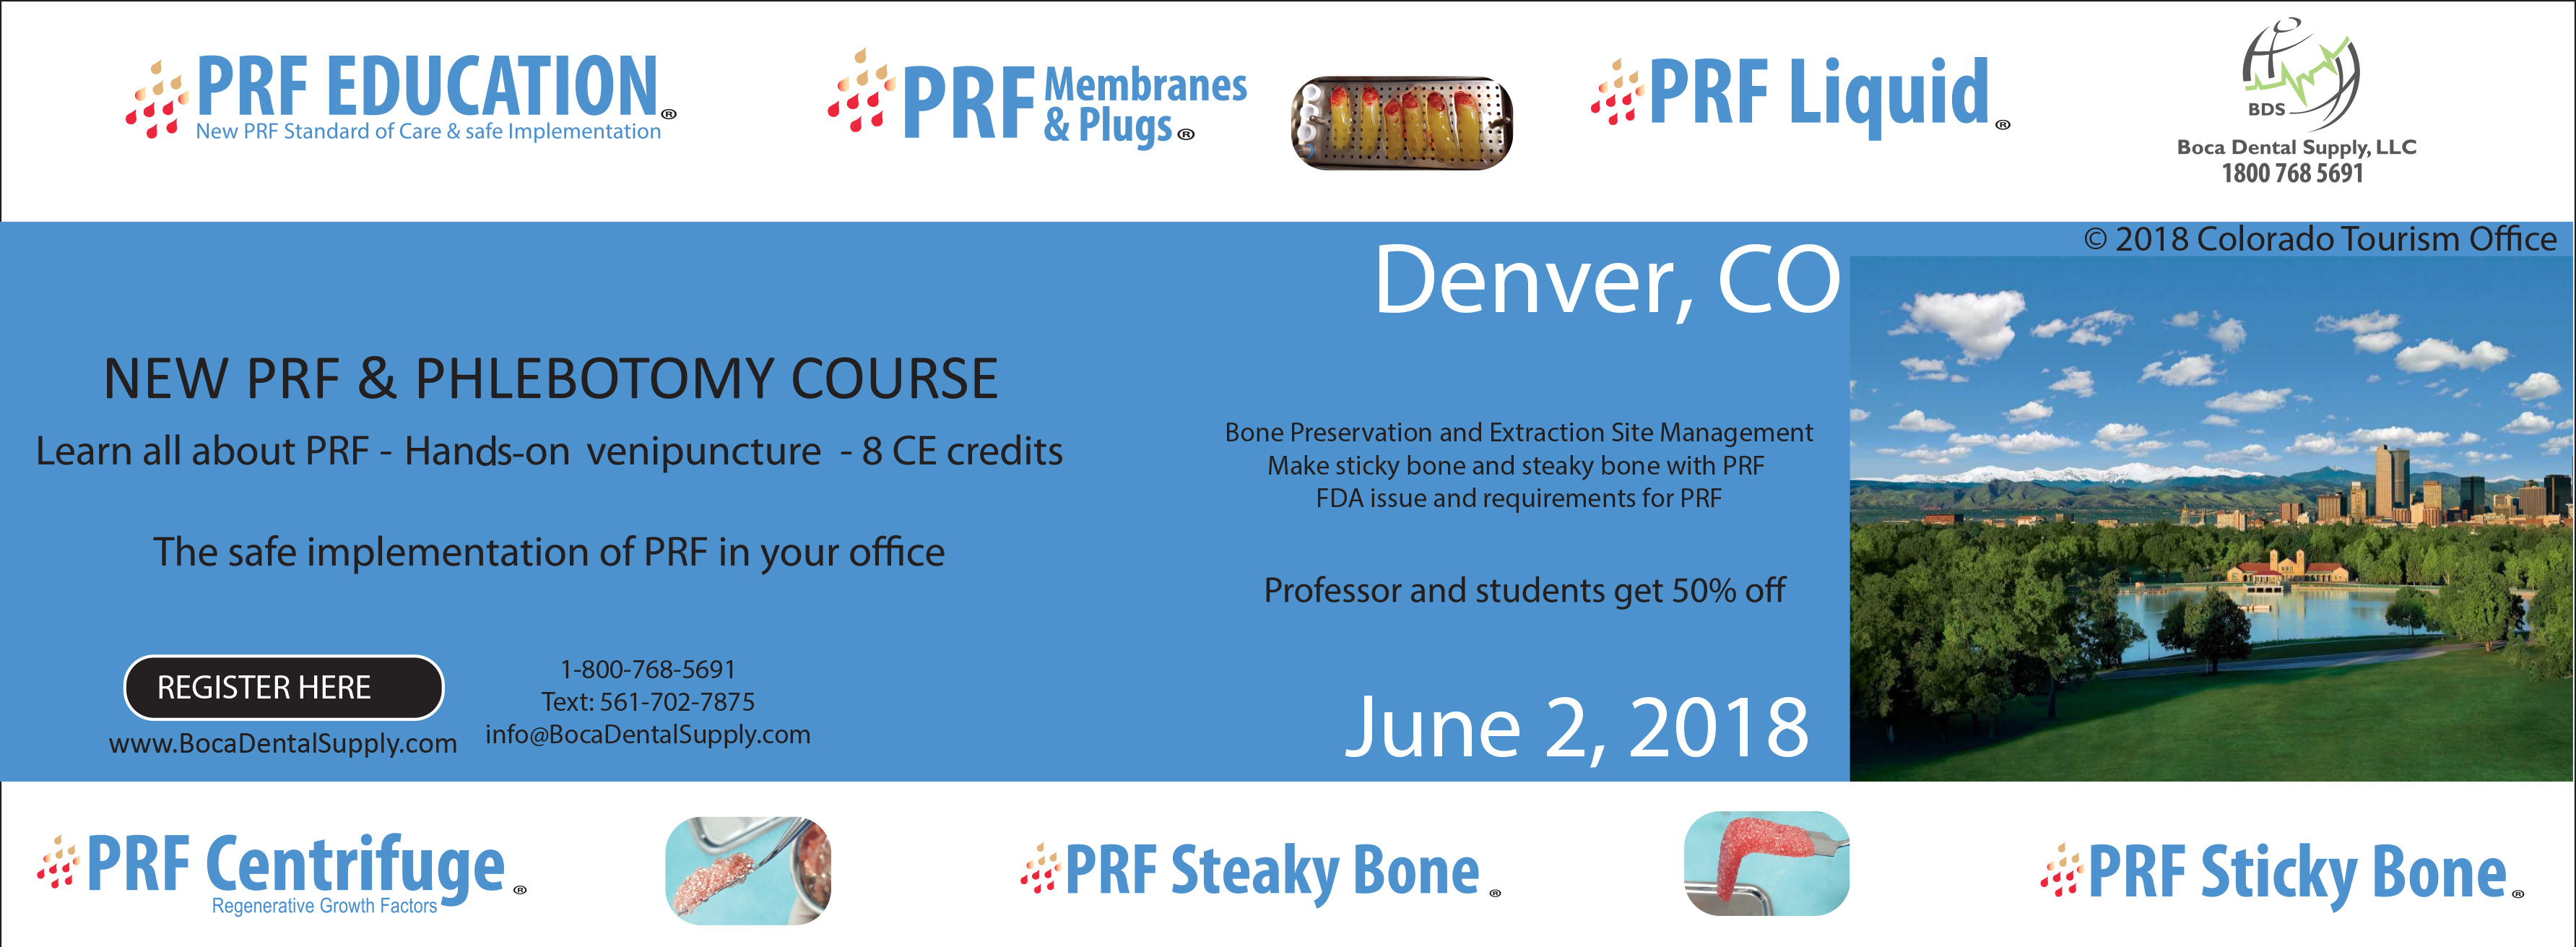 prf-course-denver-june-2018-.jpg